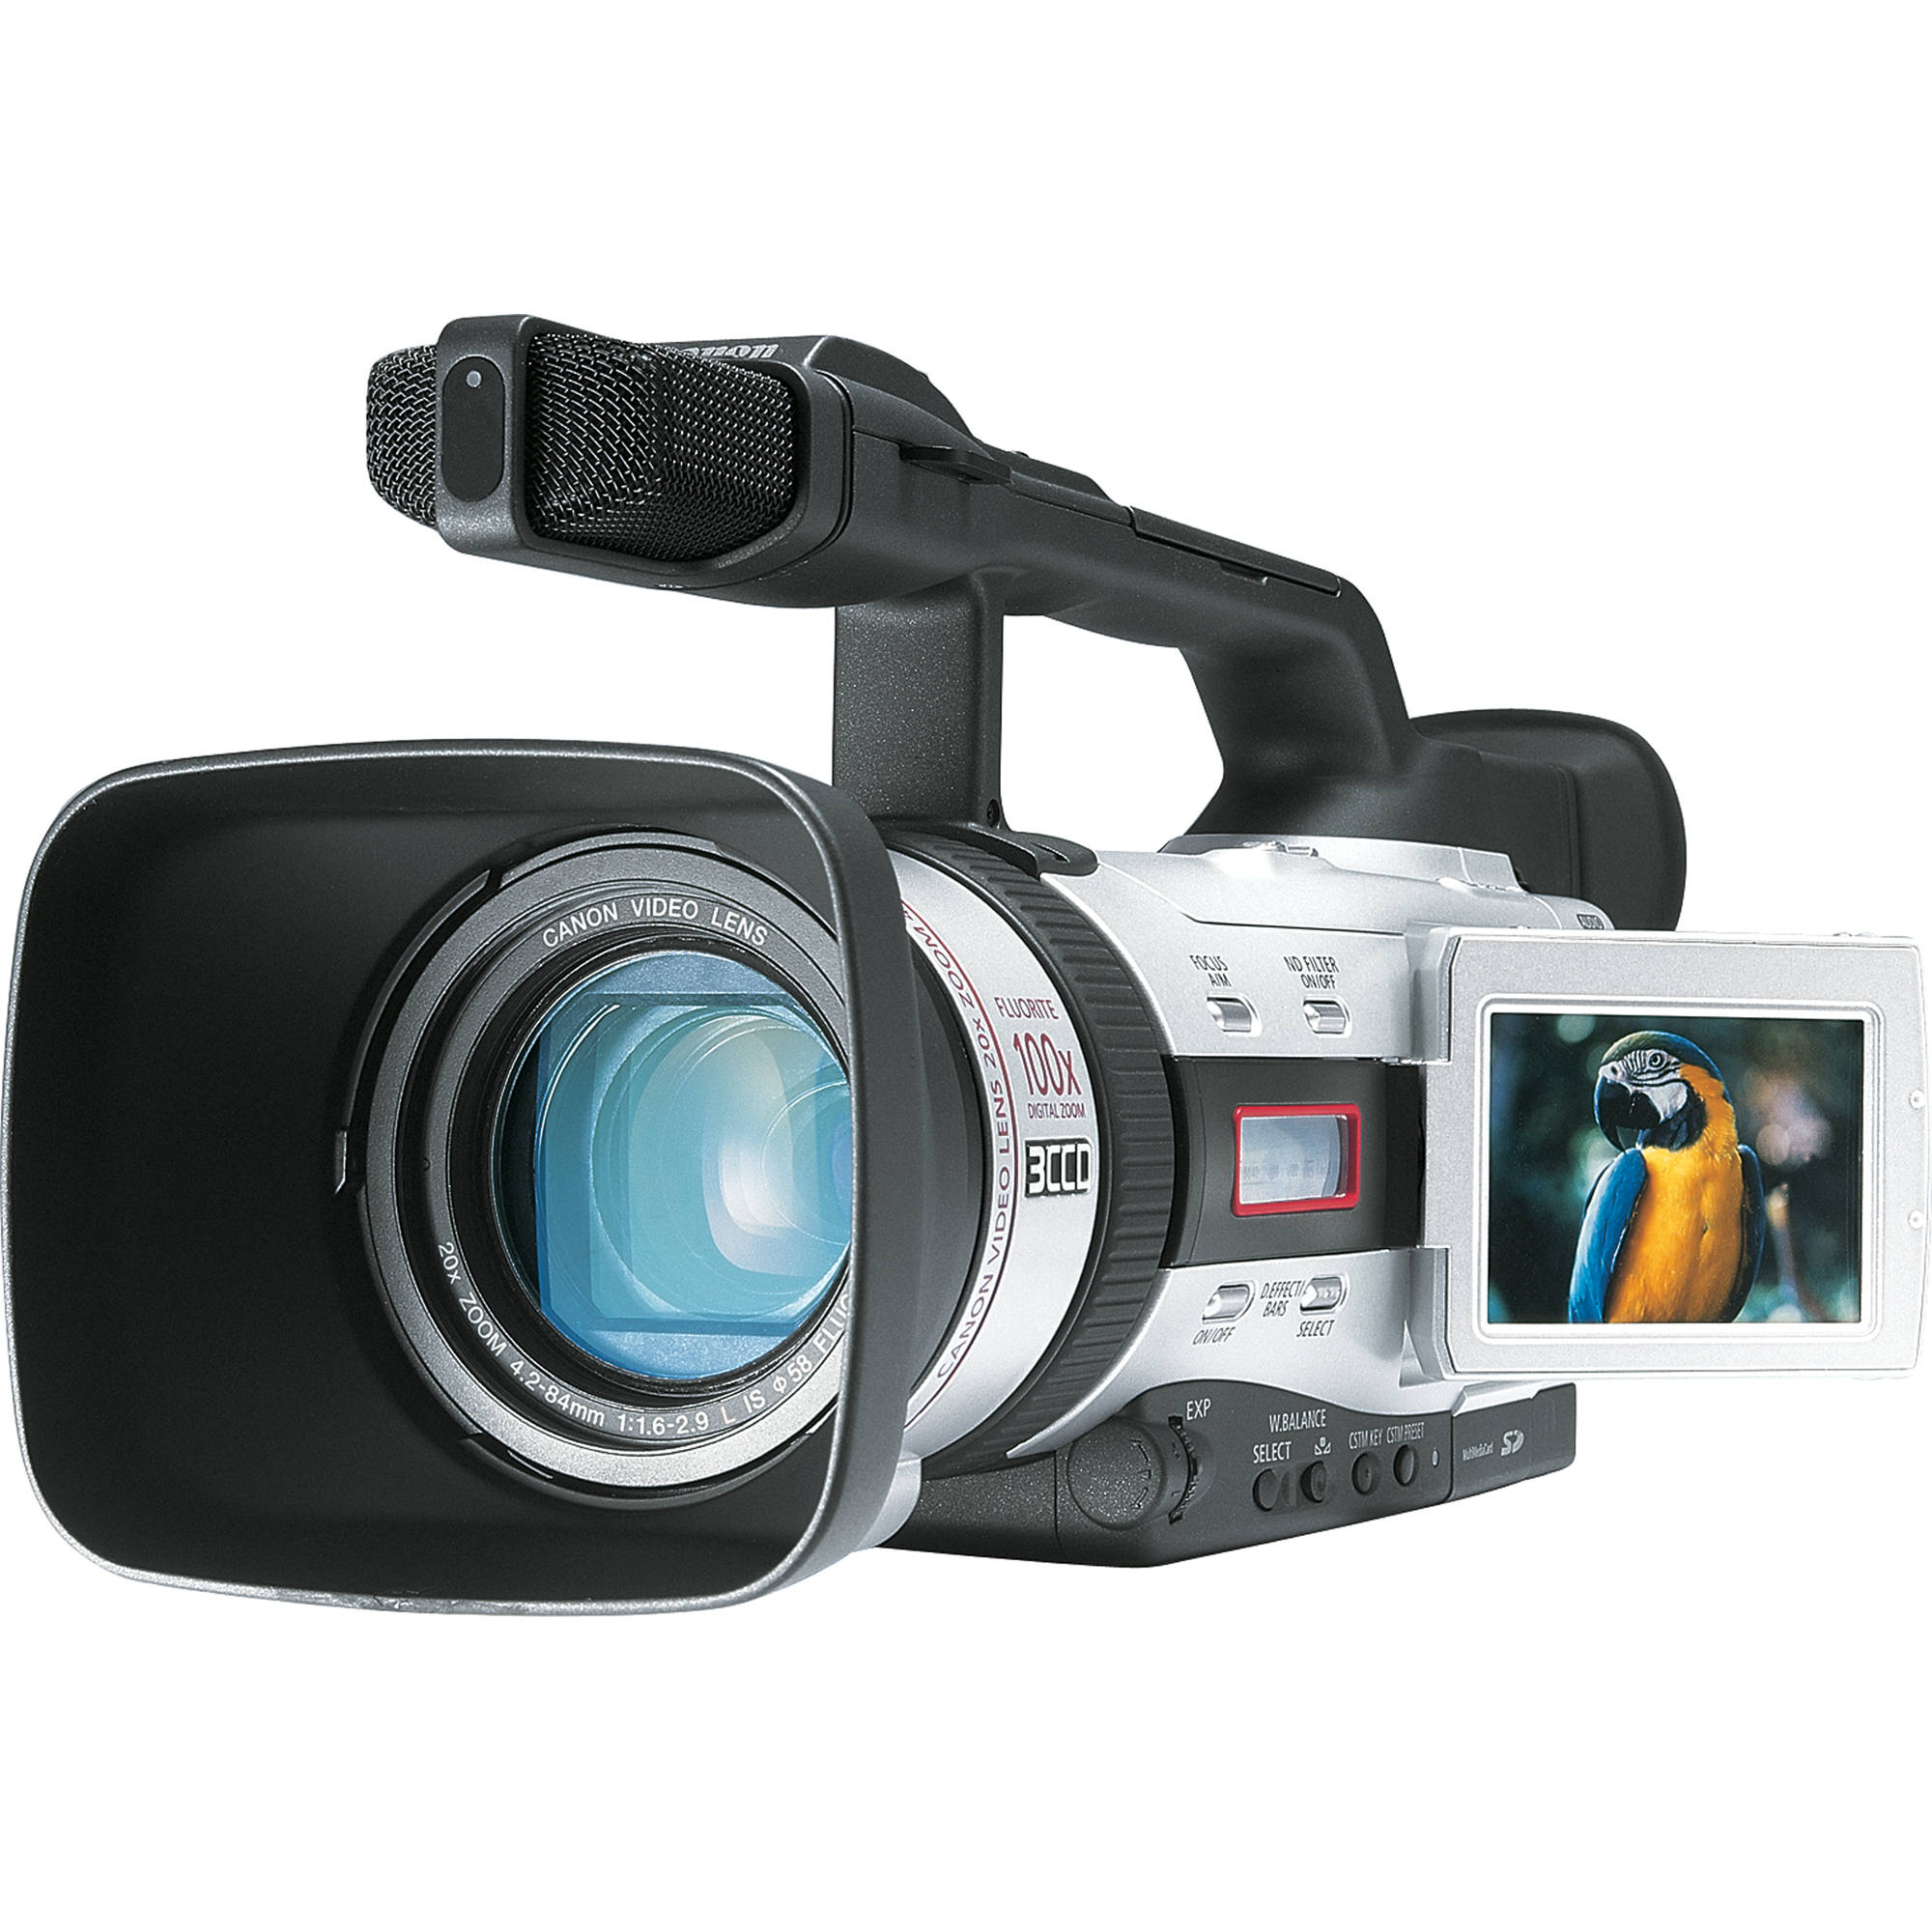 Canon zr900 mini dv camcorder manual